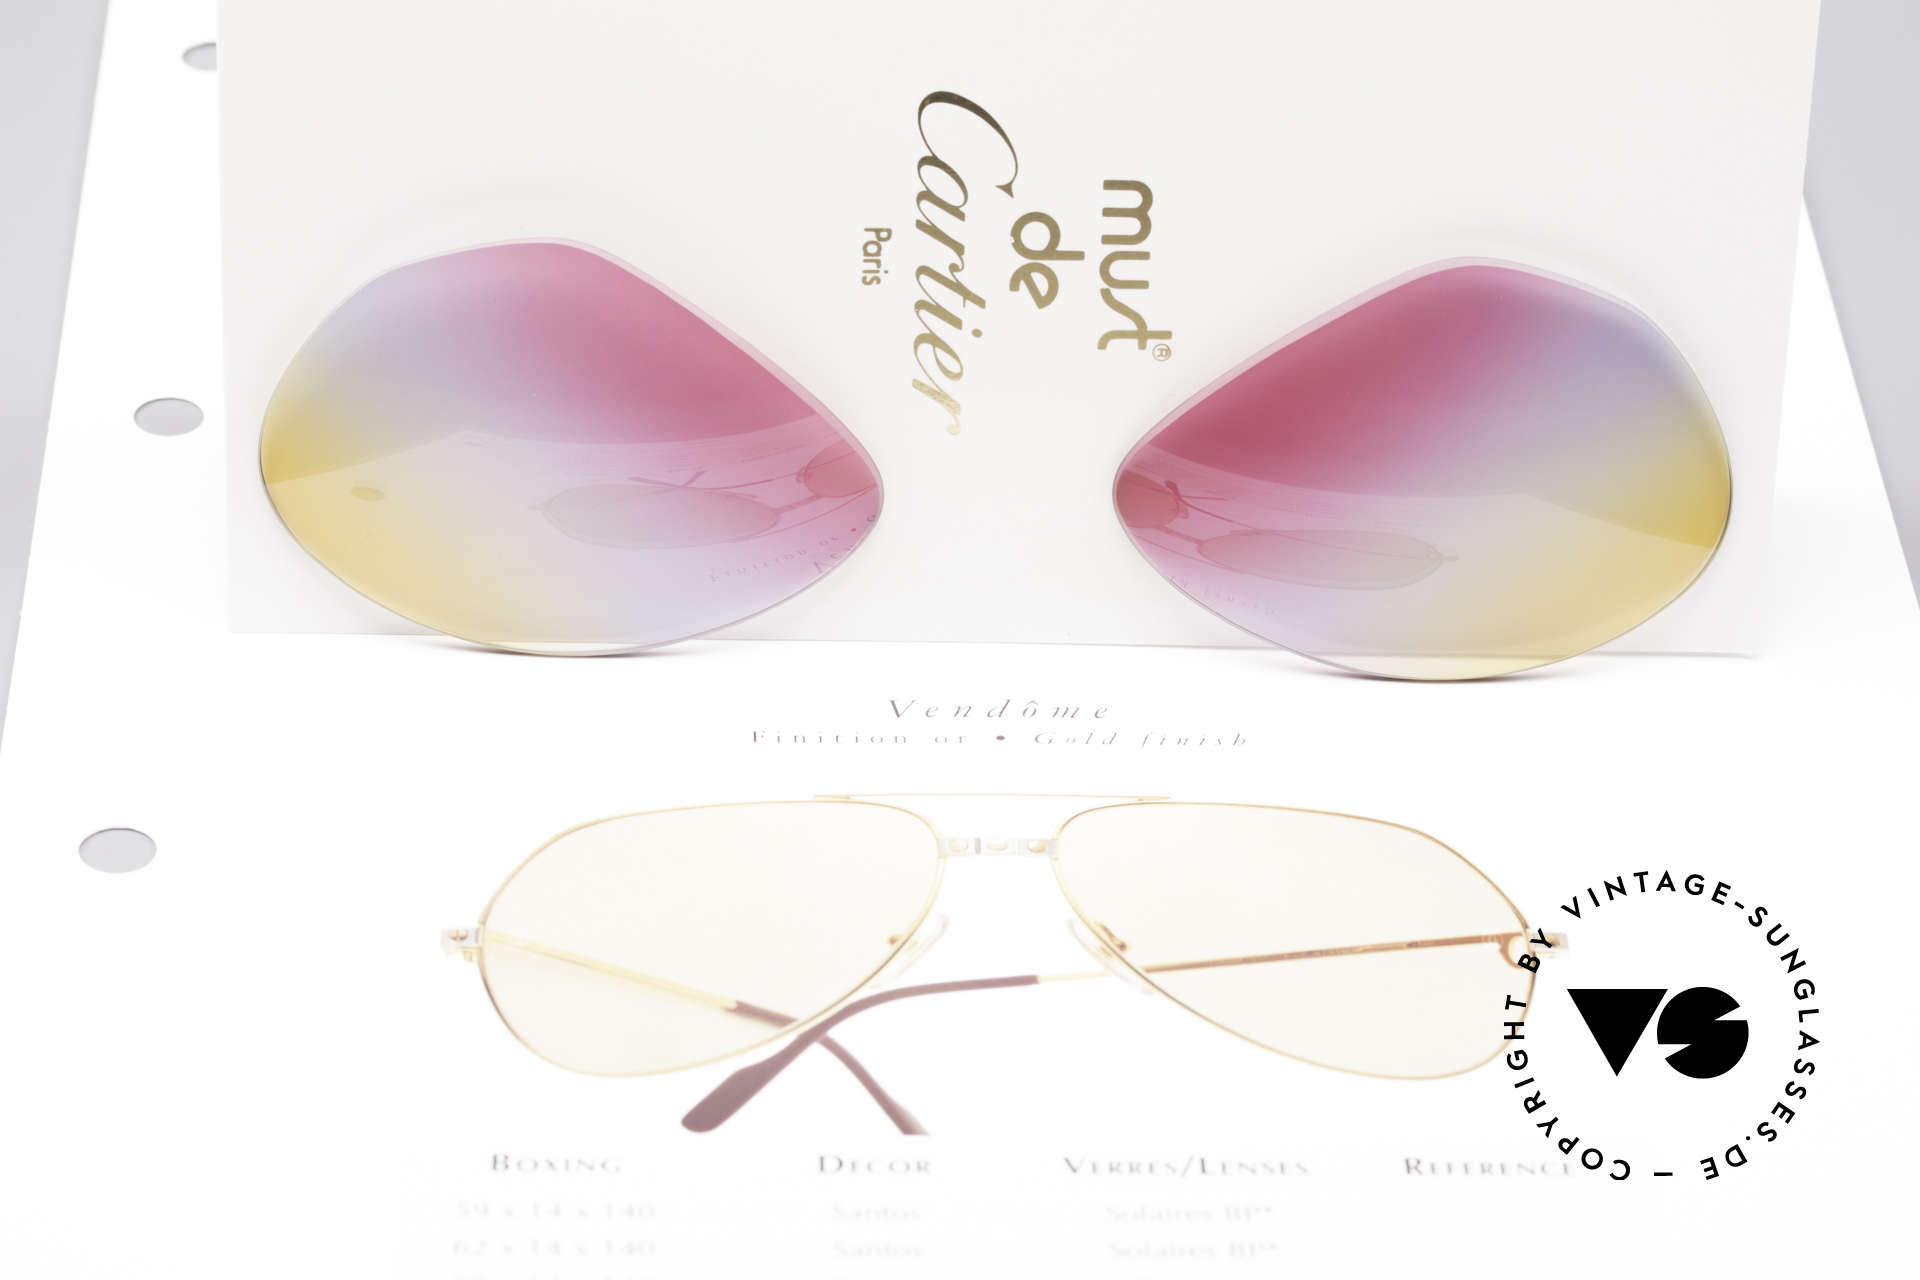 Cartier Vendome Lenses - M Tricolored Sunrise Lenses, TRICOLOR gradient: the triple tint looks like a sunrise, Made for Men and Women